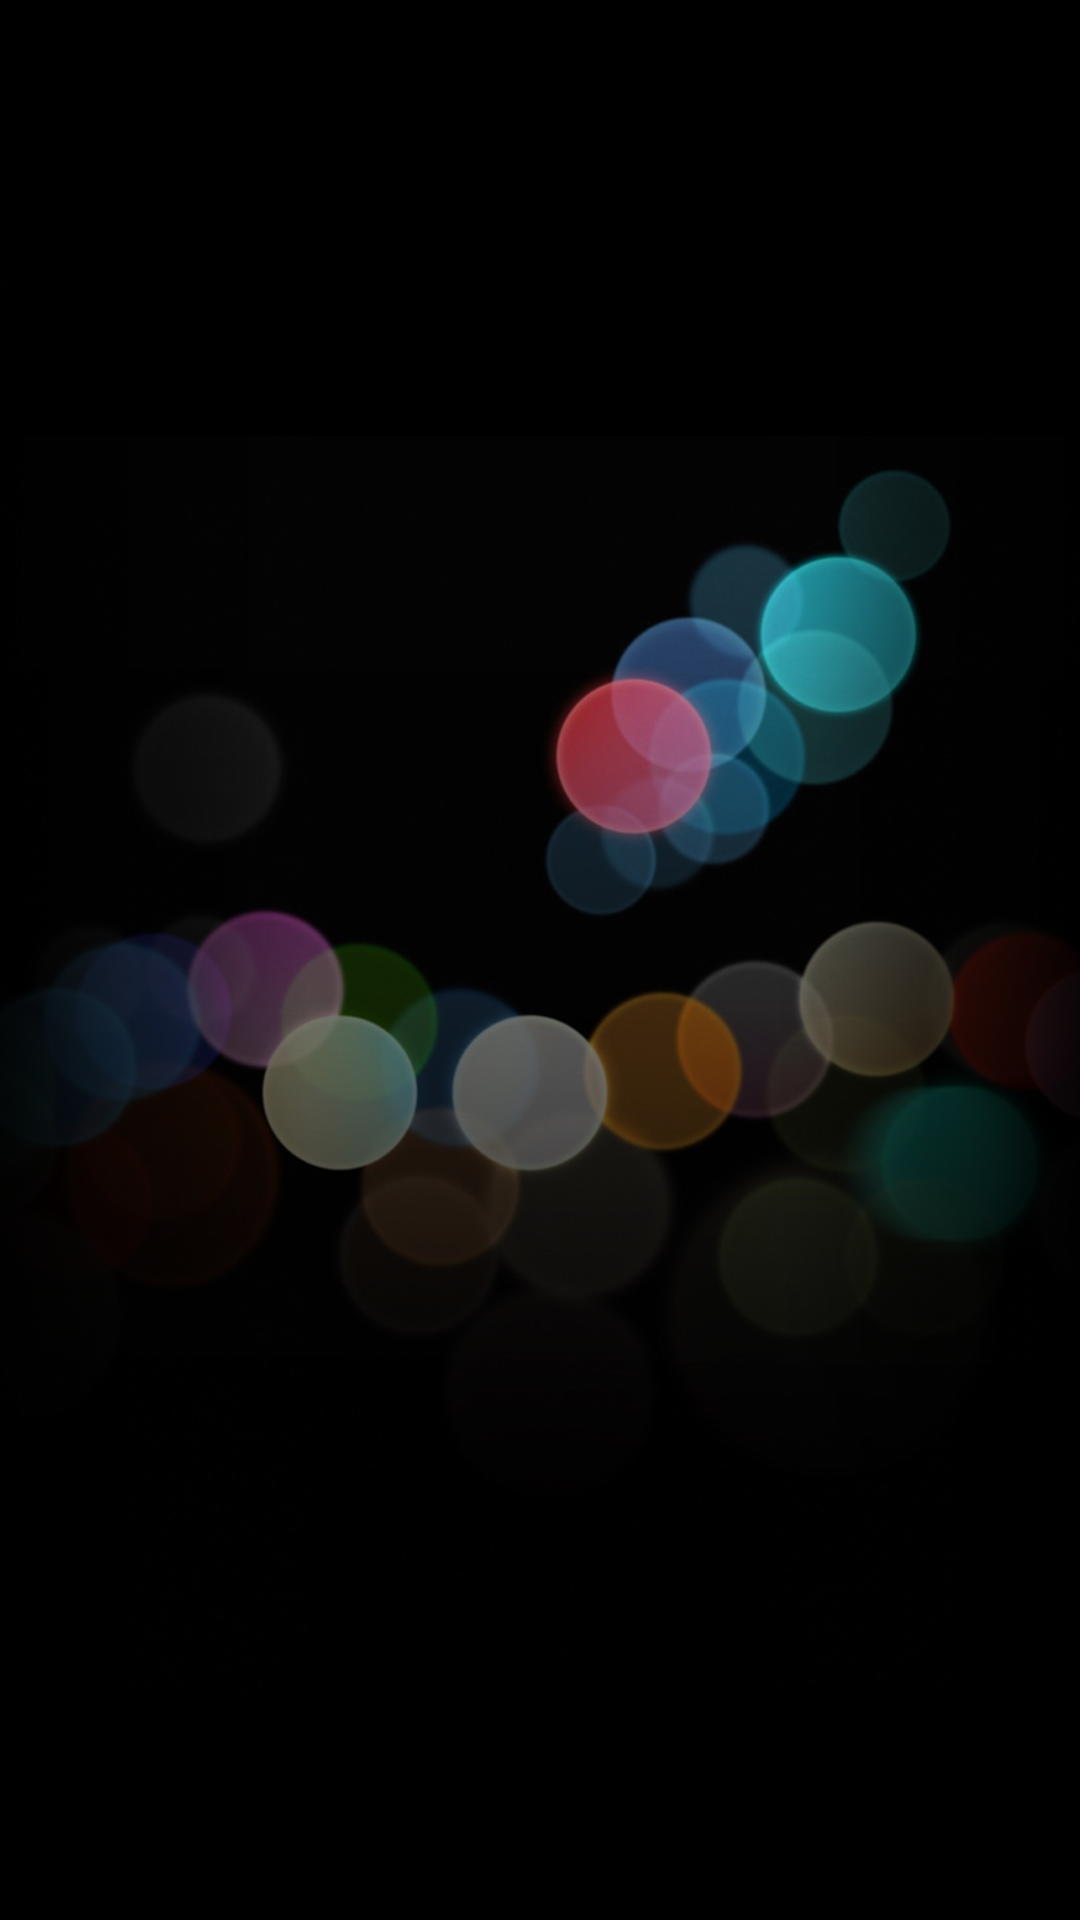 iphone-7-evento-presentacion-wallpaper-iPhone-alternate